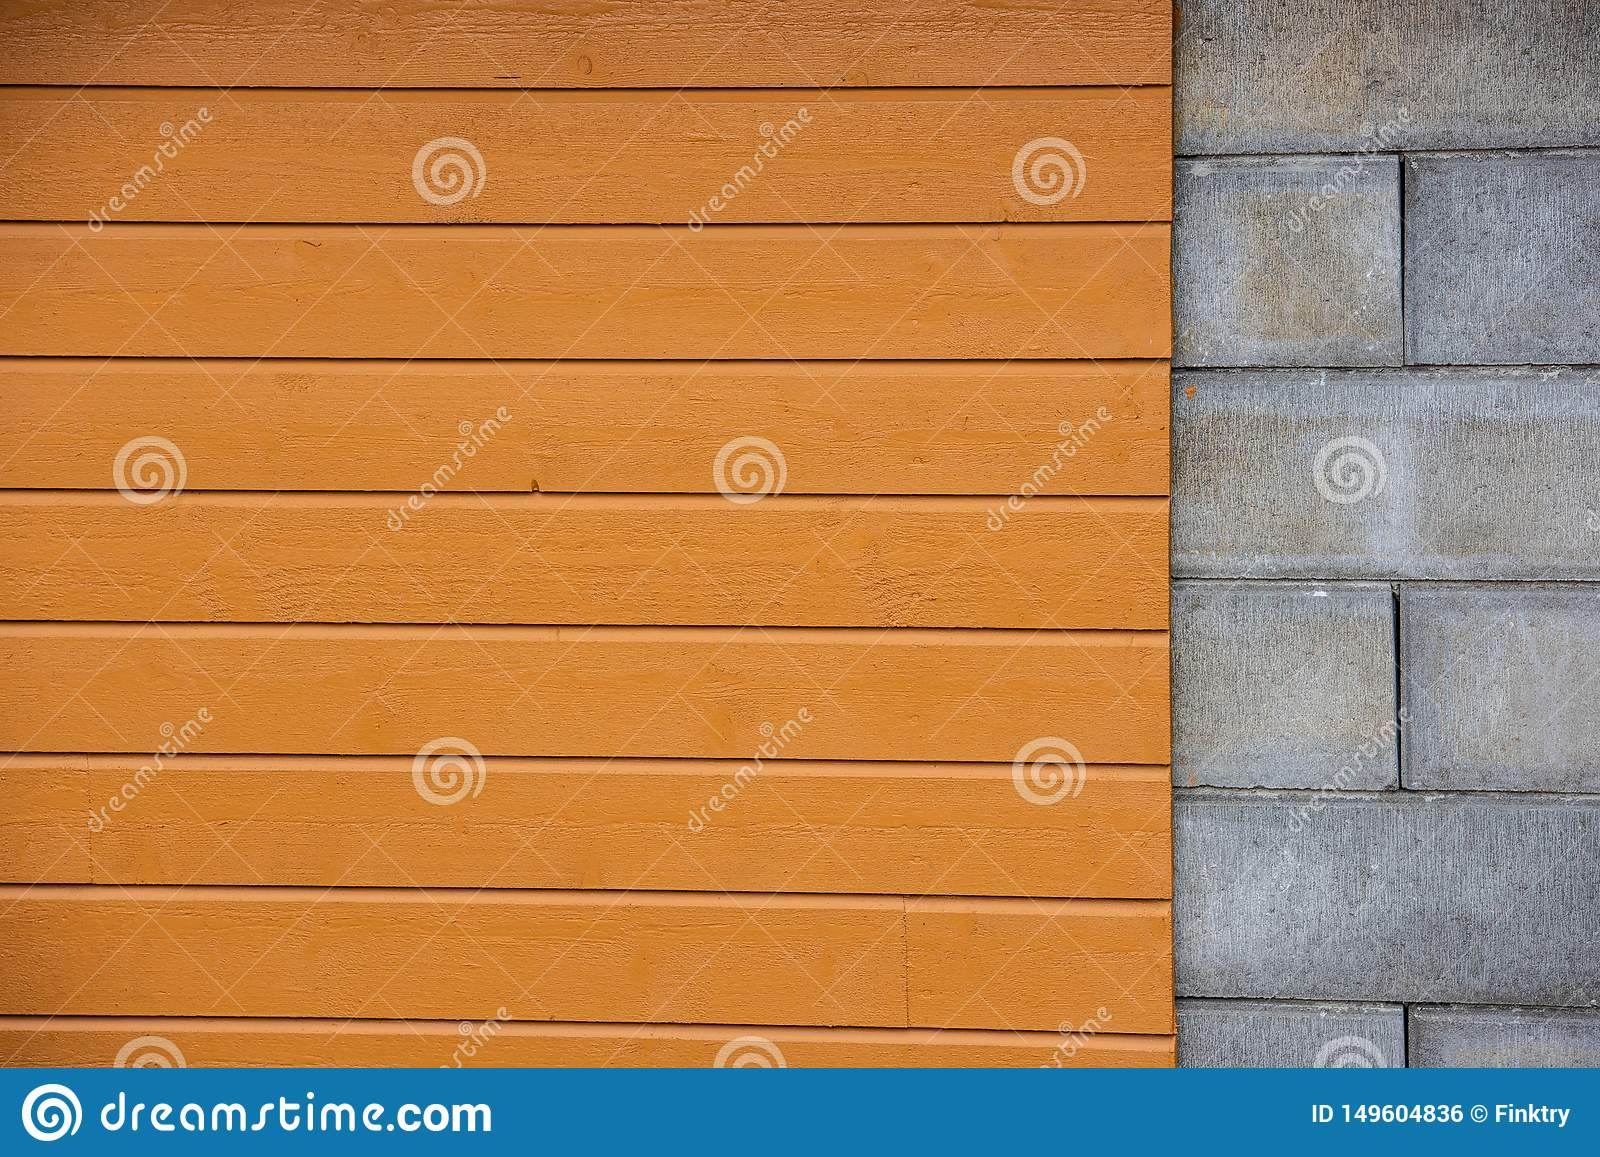 Wall with part cement blocks, part yellow wood panelling